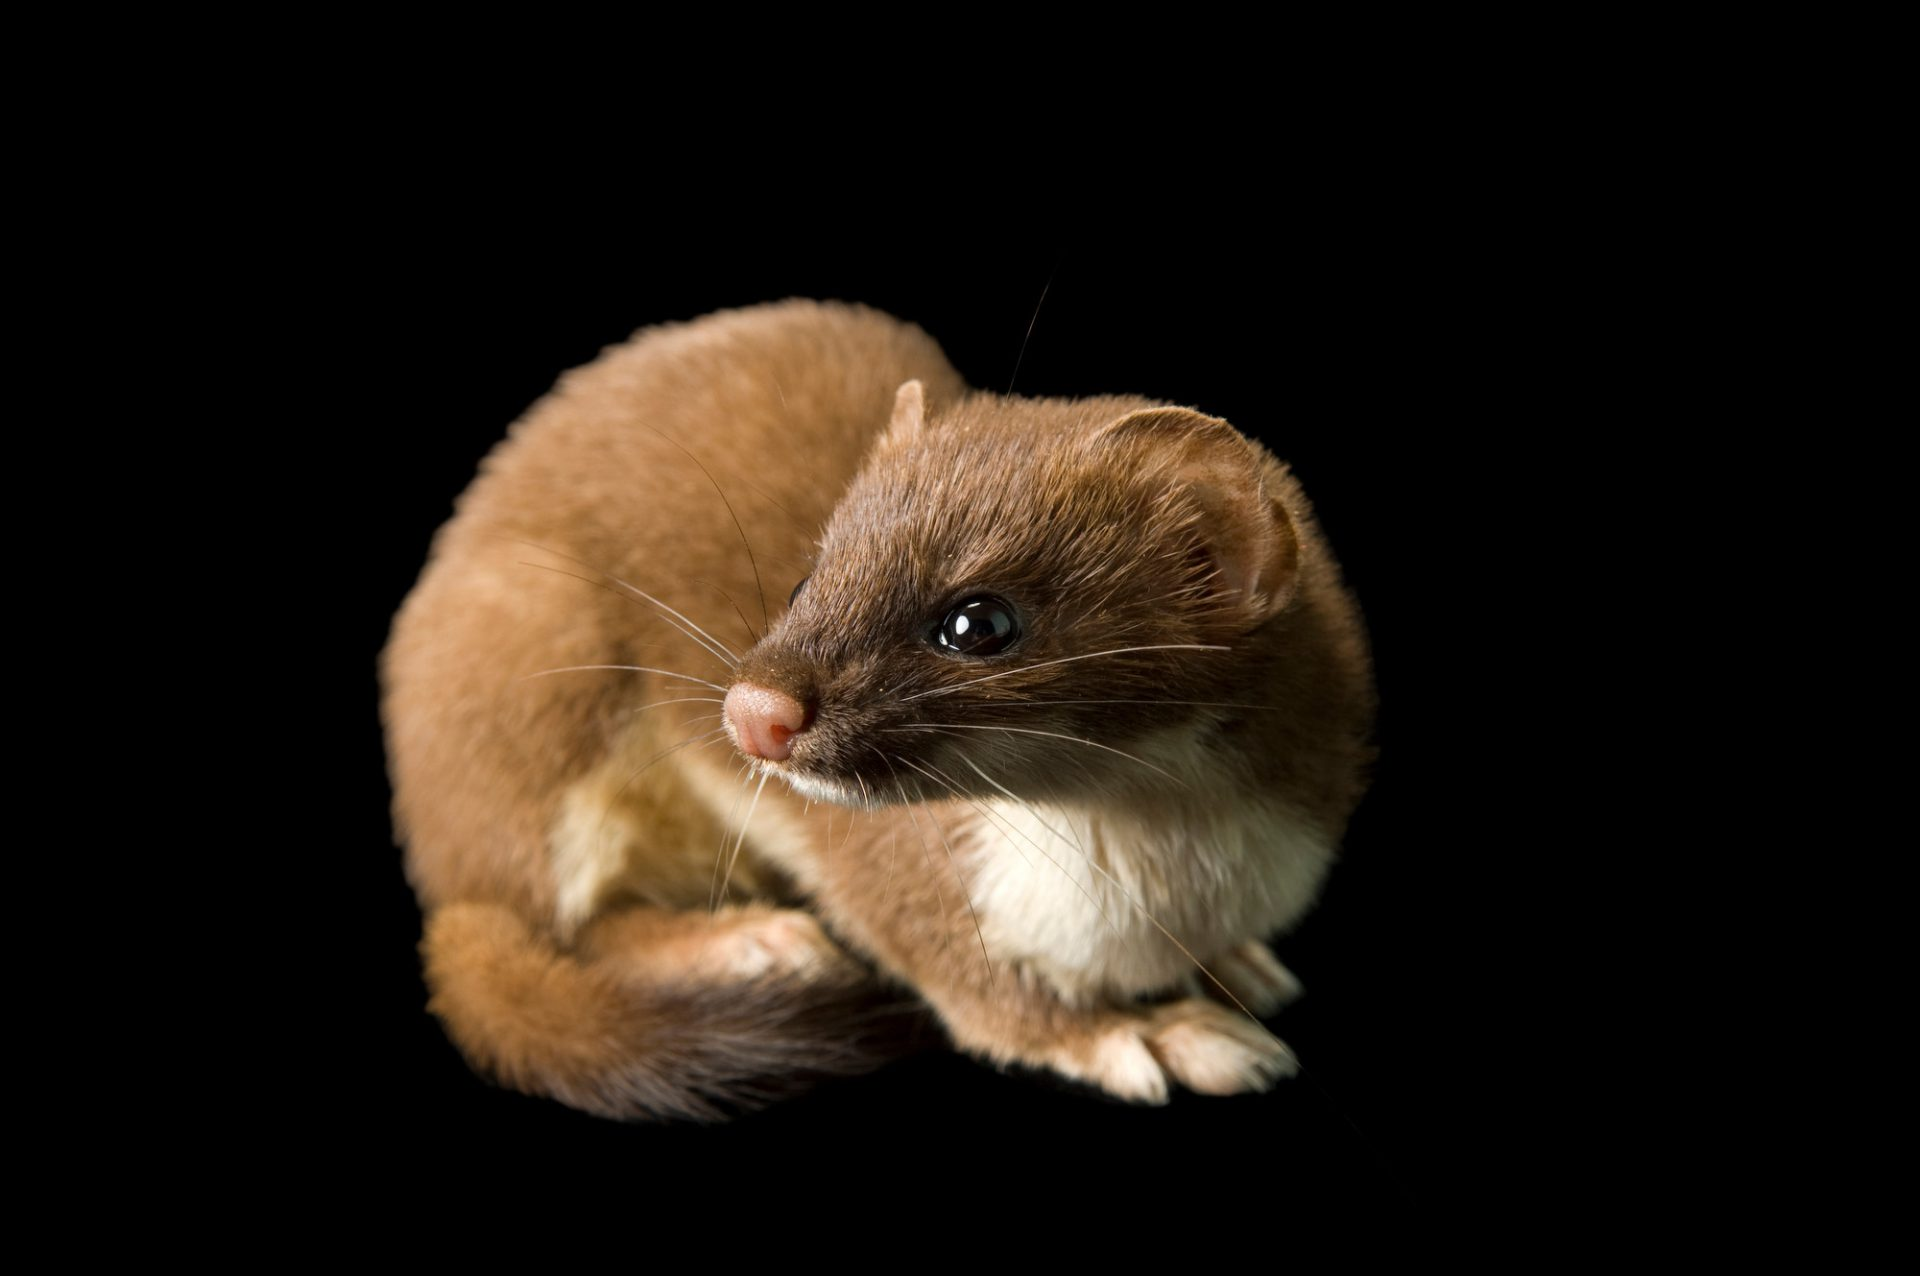 A short-tailed weasel (Mustela erminea cicognanii) at the New York State Zoo.